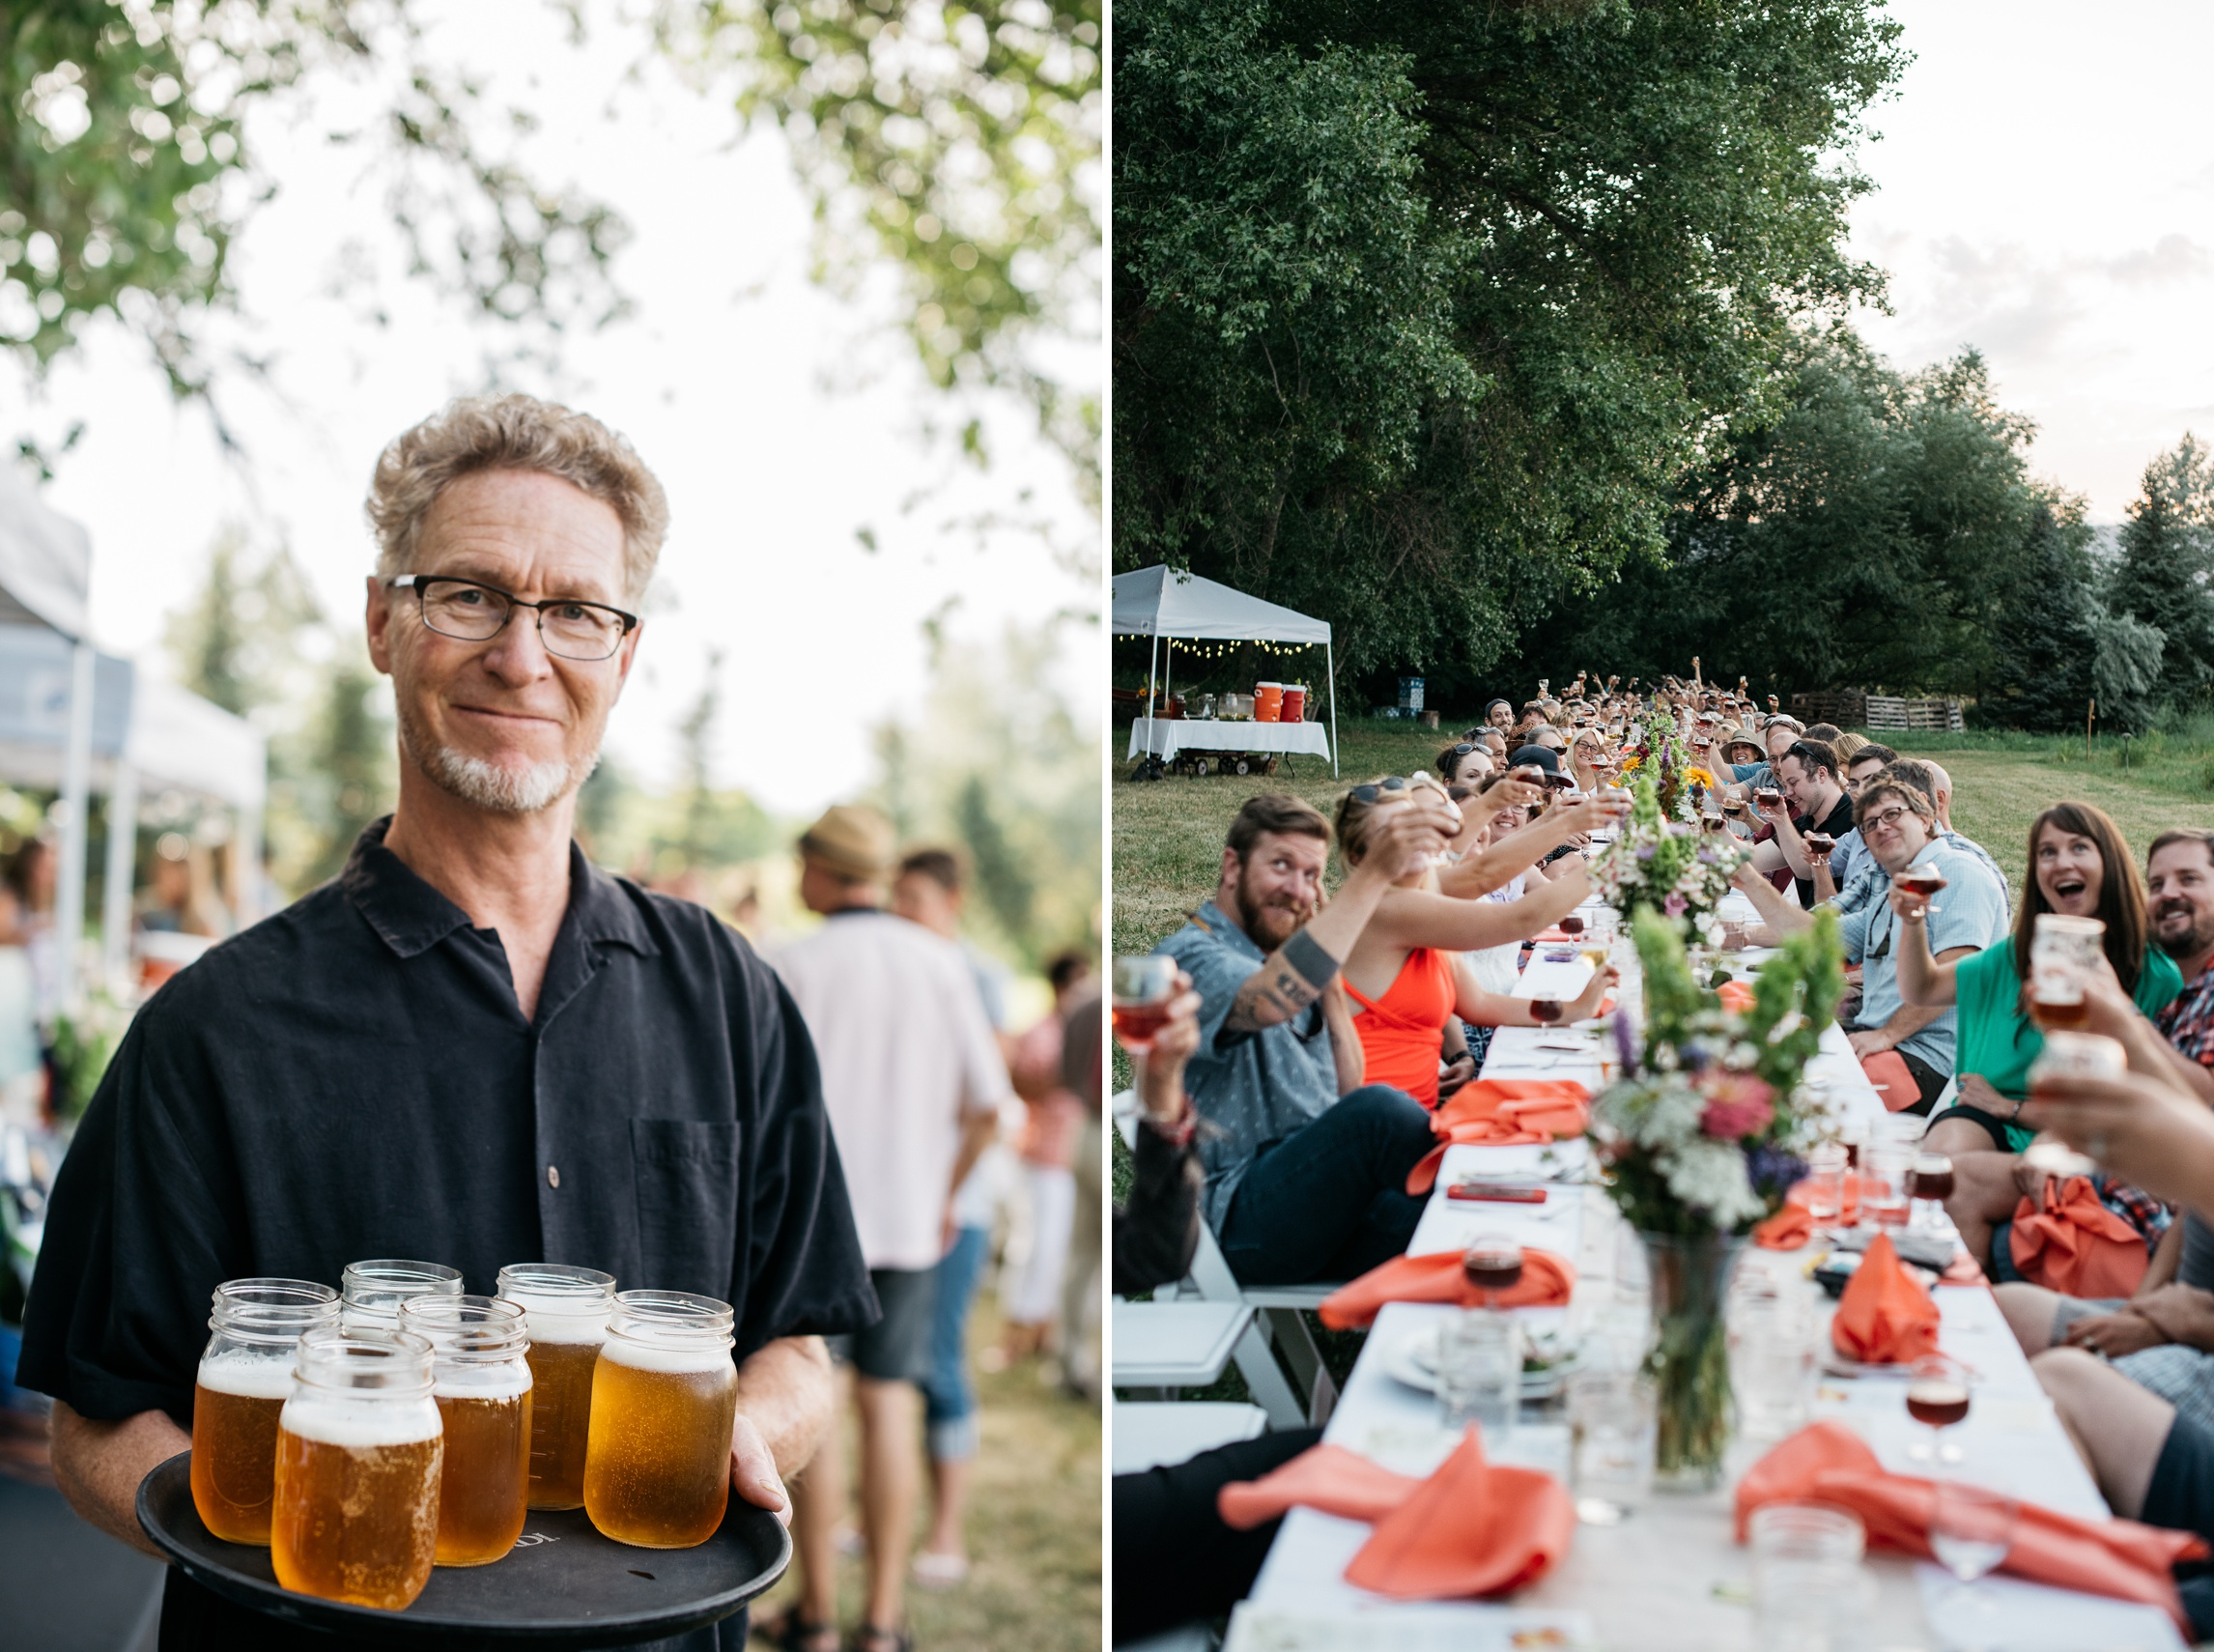 Cheers!The Fortified Collaborations Heart of Summer Farm Dinner at Happy Heart Farm in Fort Collins, Colorado. Beer by Equinox Brewing. Event photography by Sonja Salzburg of Sonja K Photography.